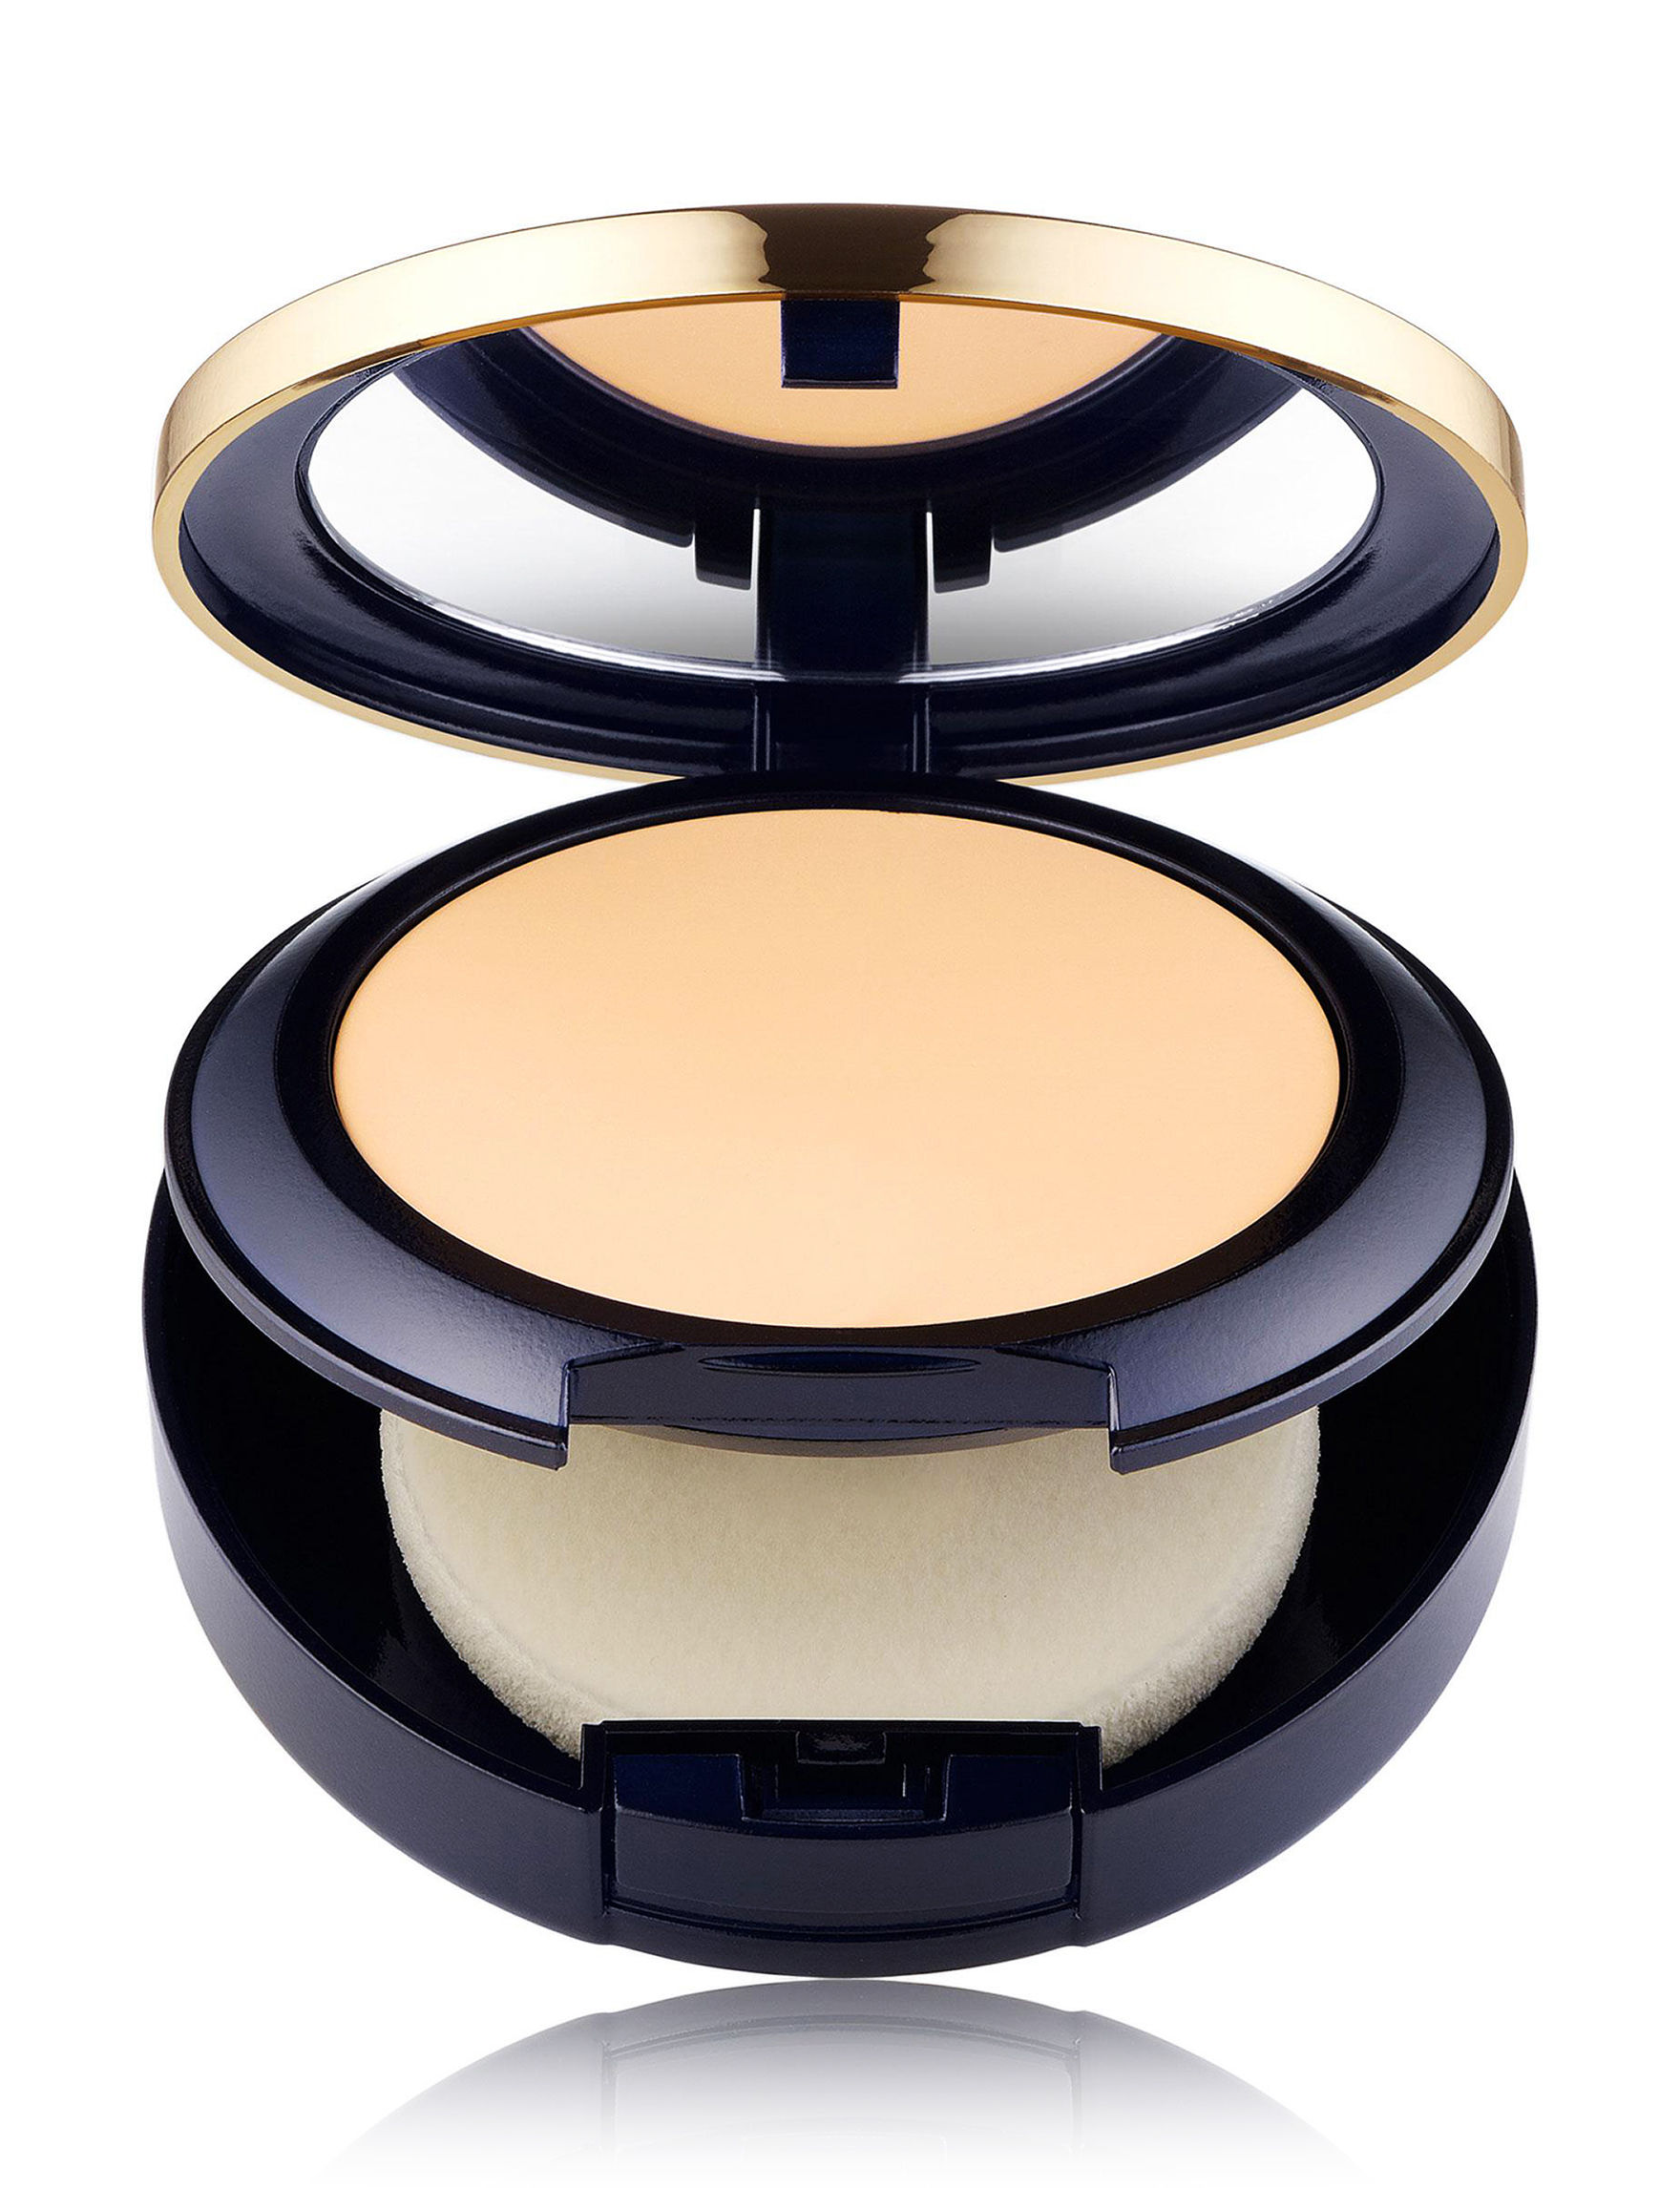 Estee Lauder Buff Face Foundation